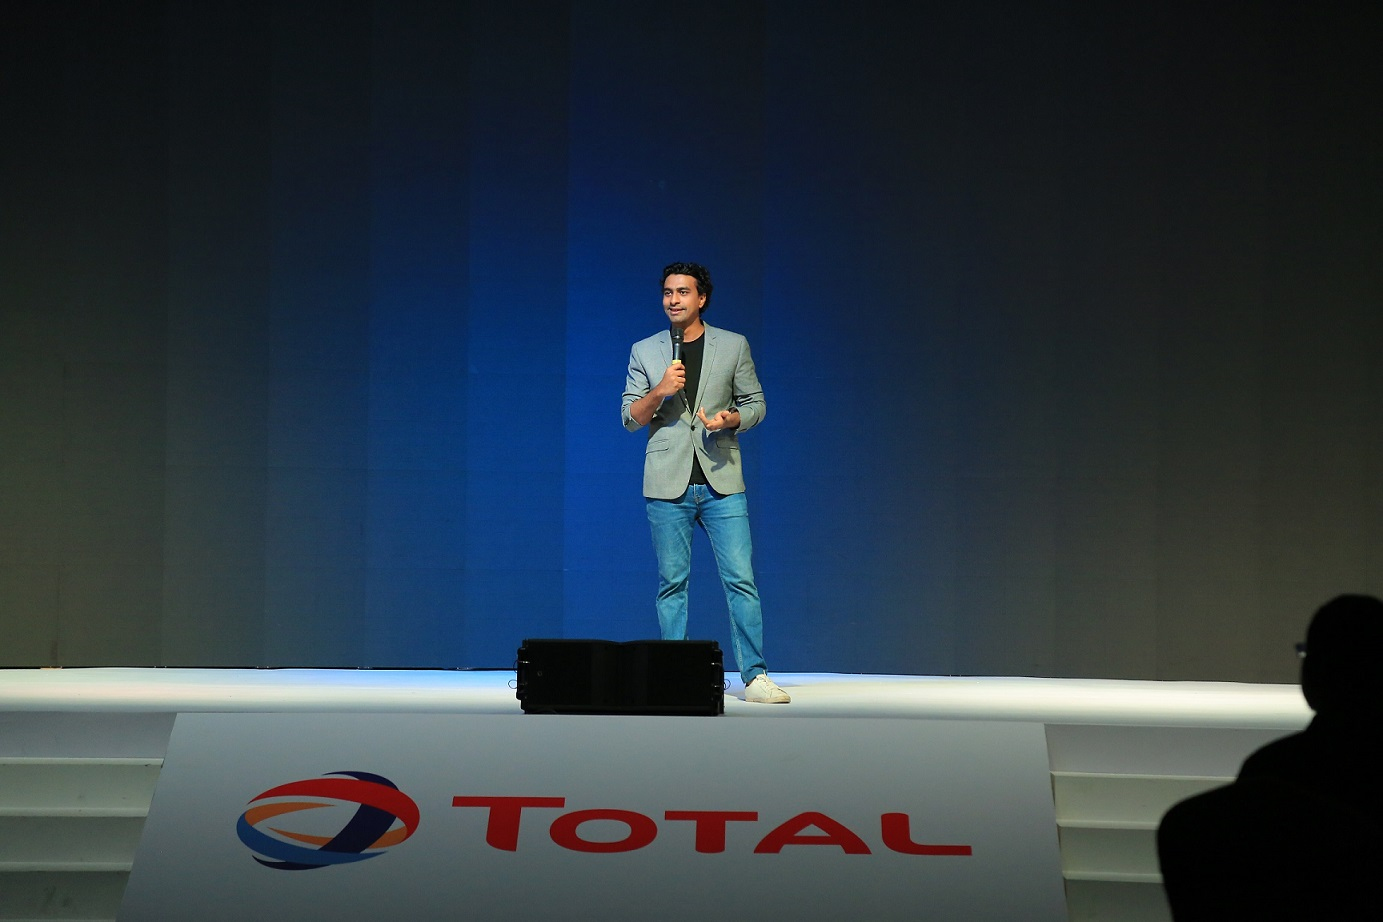 Total: Annual Business Meet